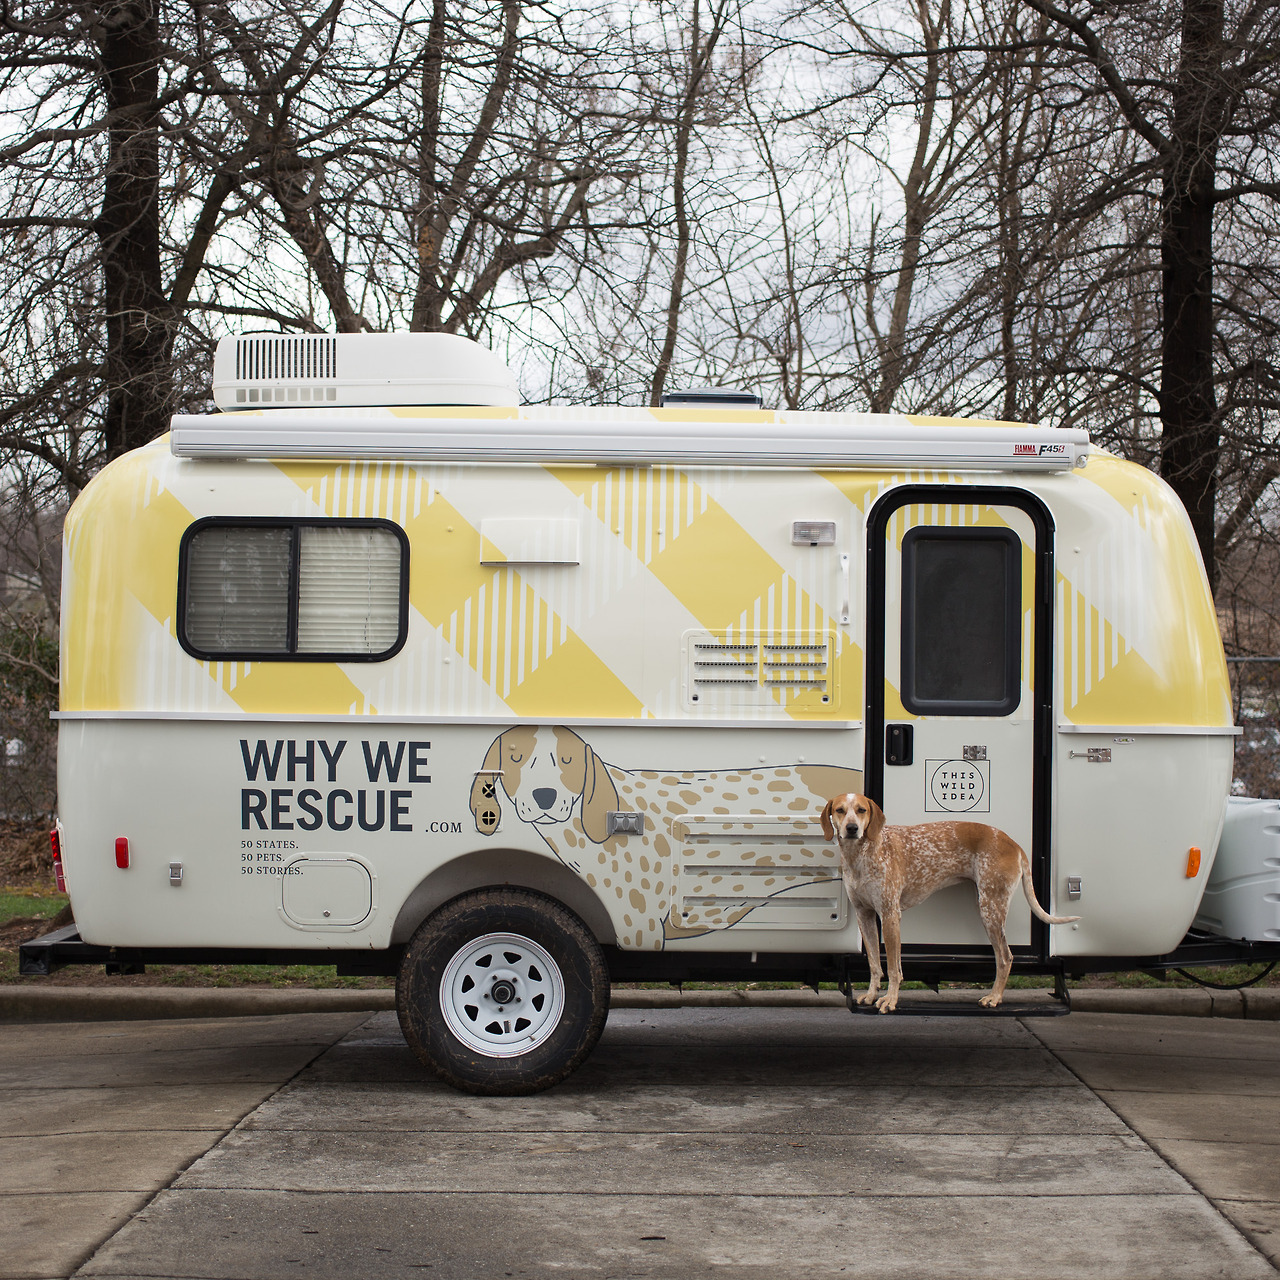 maddieonthings :      Today is a new day! The trailer is wrapped and ready for all 50 states (and some of Canada too). Look for the Maddie book tour and Why We Rescue websites to launch later this week.    I'm pumped to meet all ya'll out on the road! It's going to be an amazing 10 months. Hats off to Purina One   for enabling this documentary.     If you're not waking up each morning doing something you love I want to encourage ya'll to live a better story! Do what you love. Live your passion. We only get one go around.      … we are hoping to meet them …